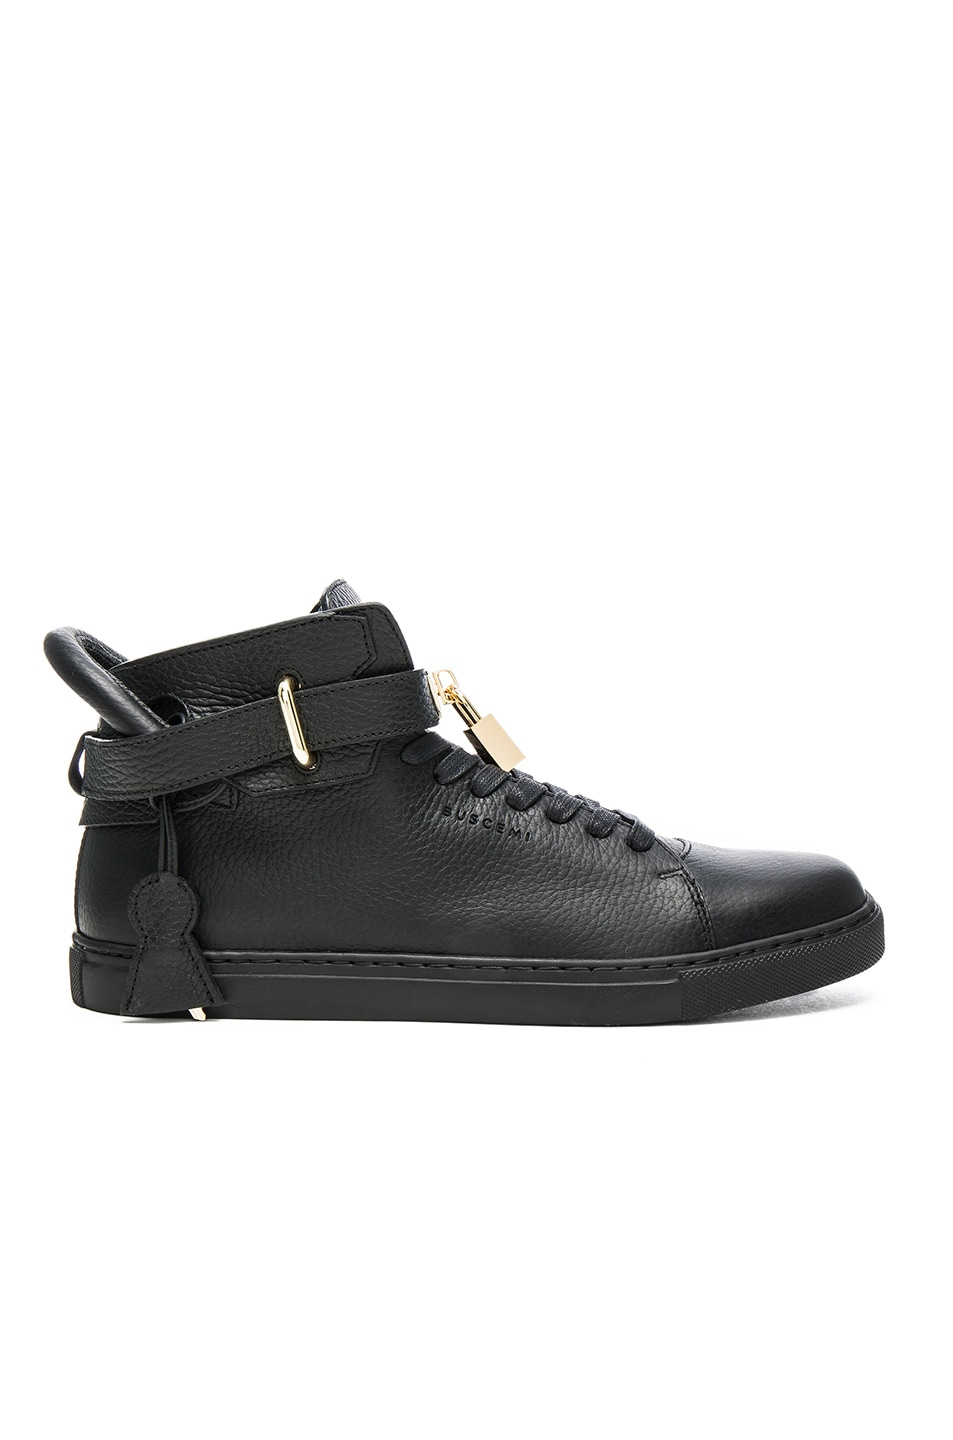 Buscemi 100MM High Top Pebbled Leather Sneakers Black chic